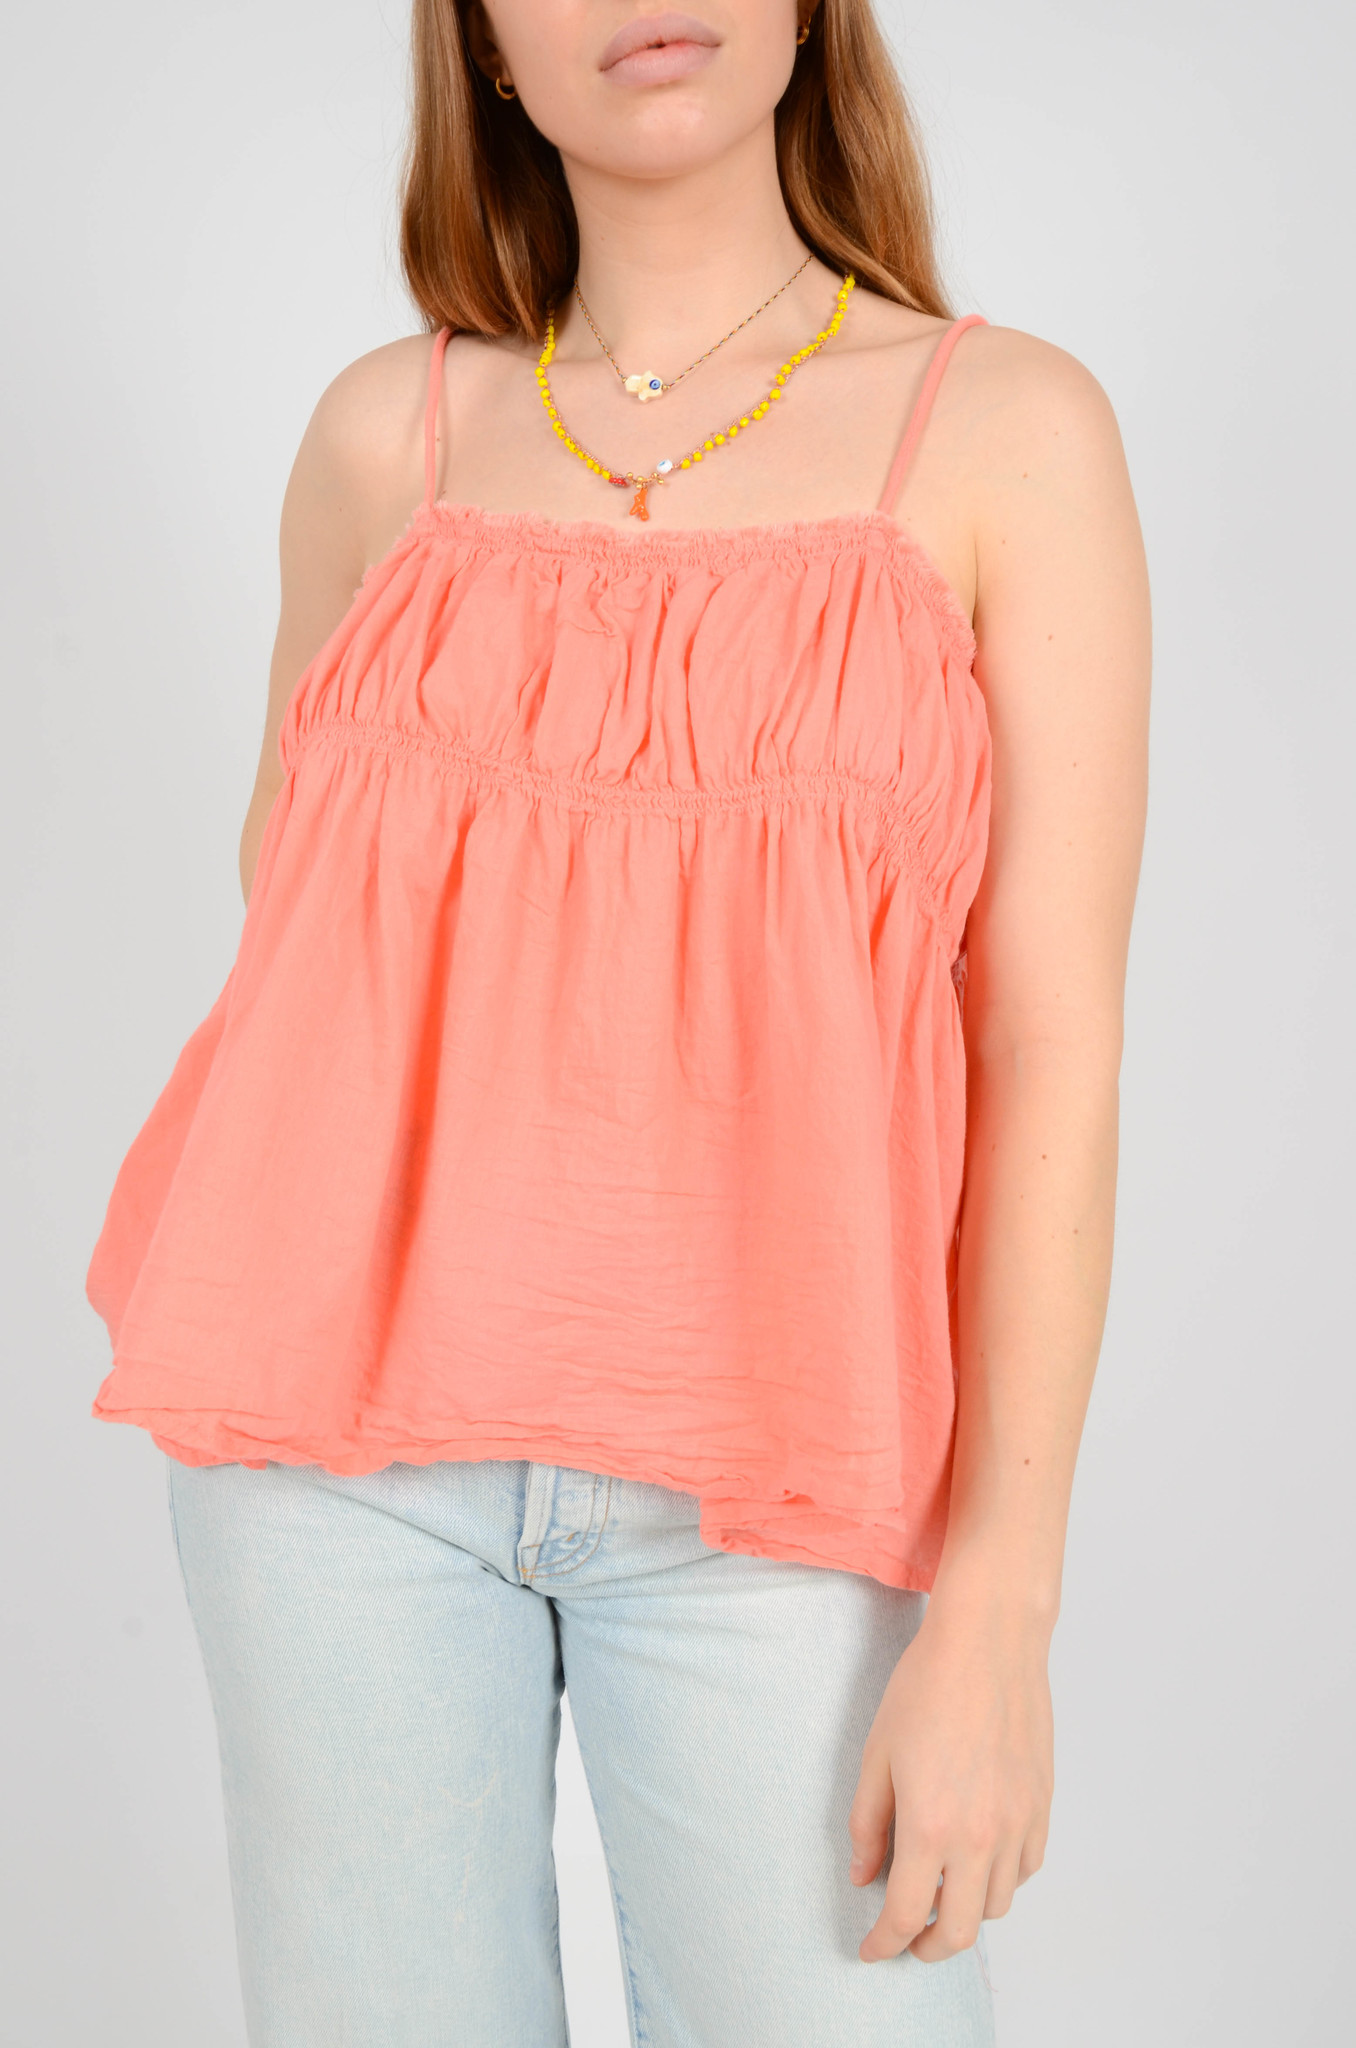 HAILEY TANKTOP IN CORAL-2